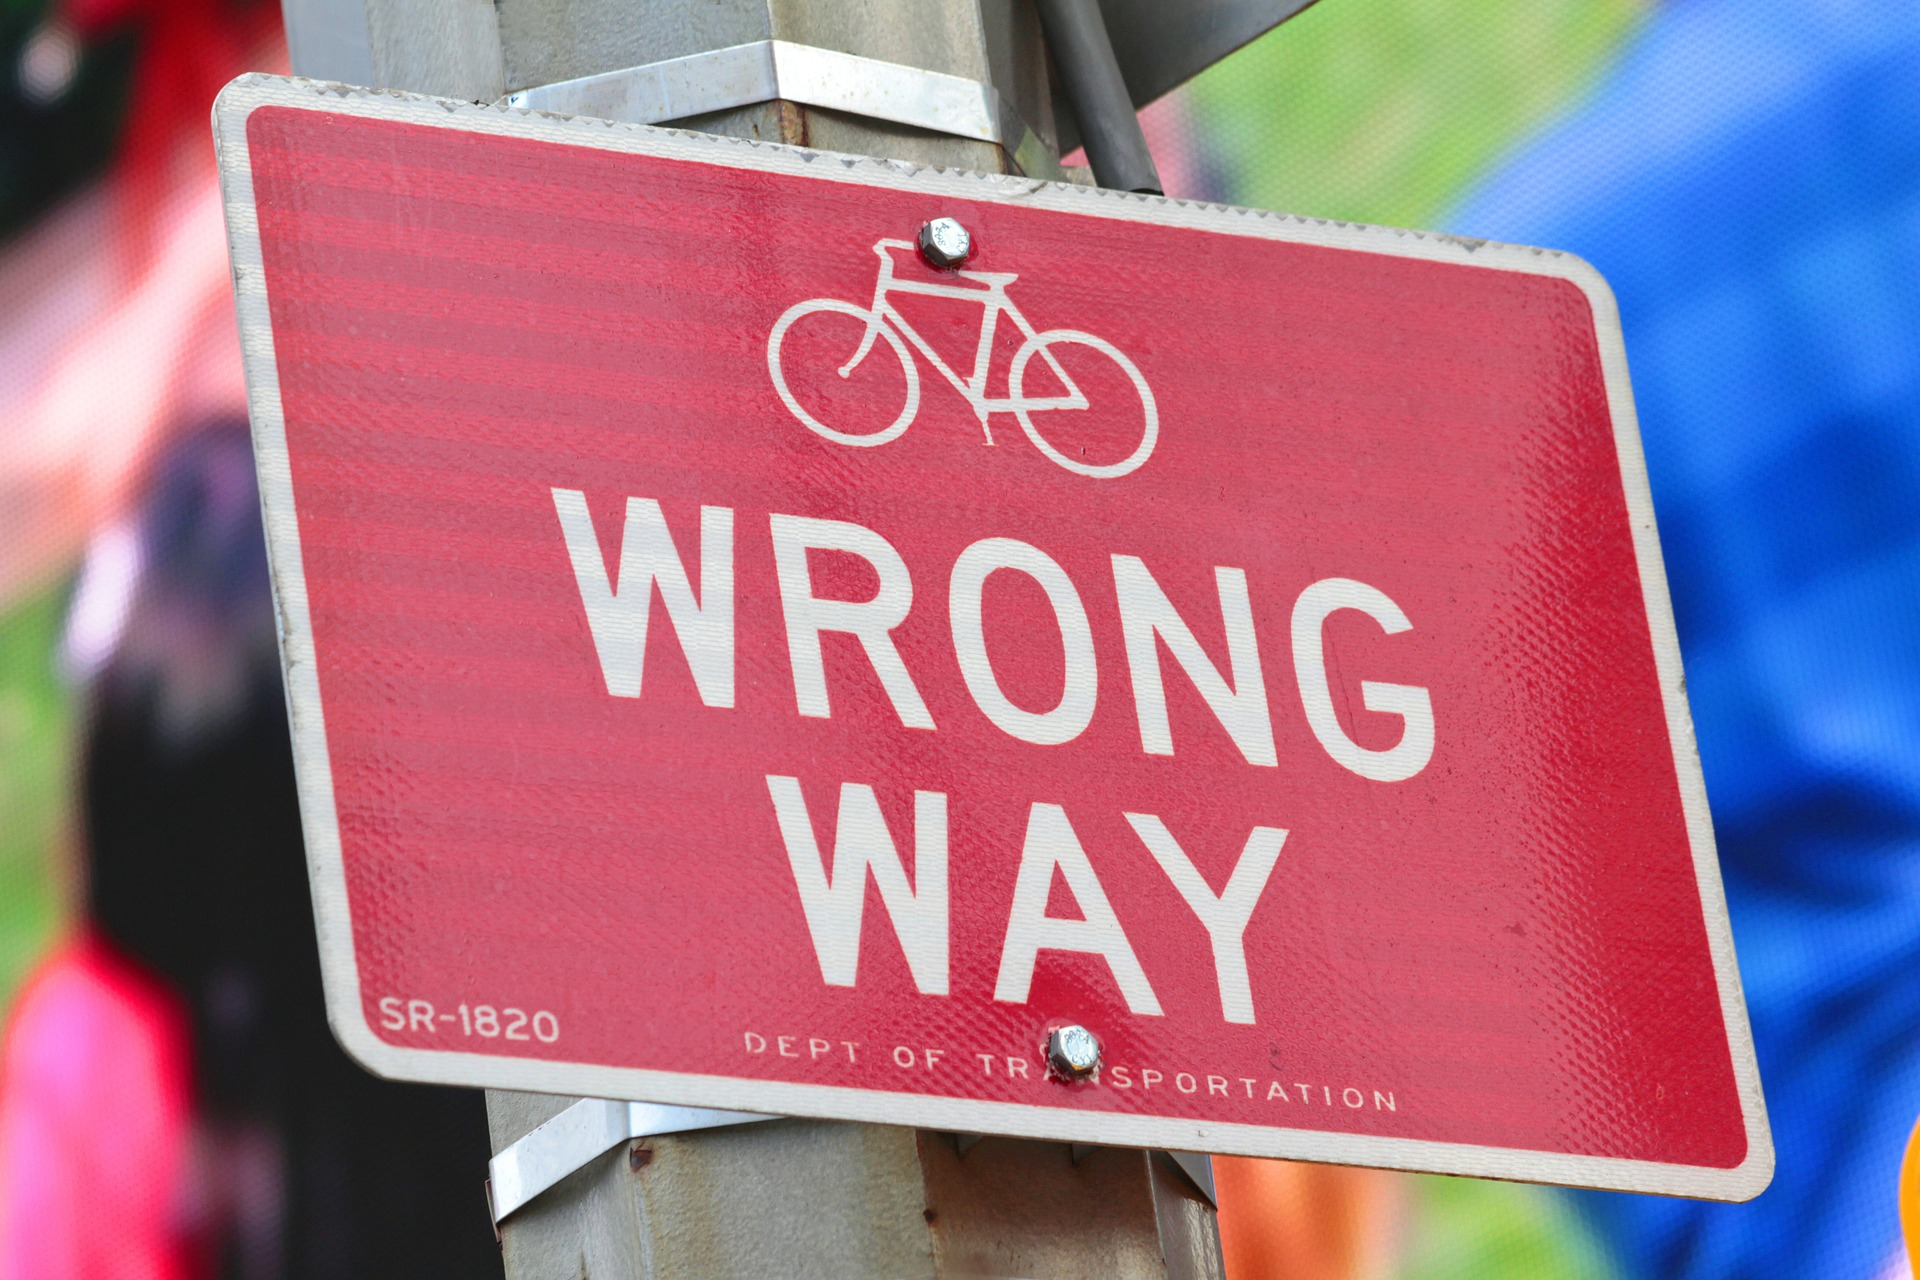 Wrong way signpost